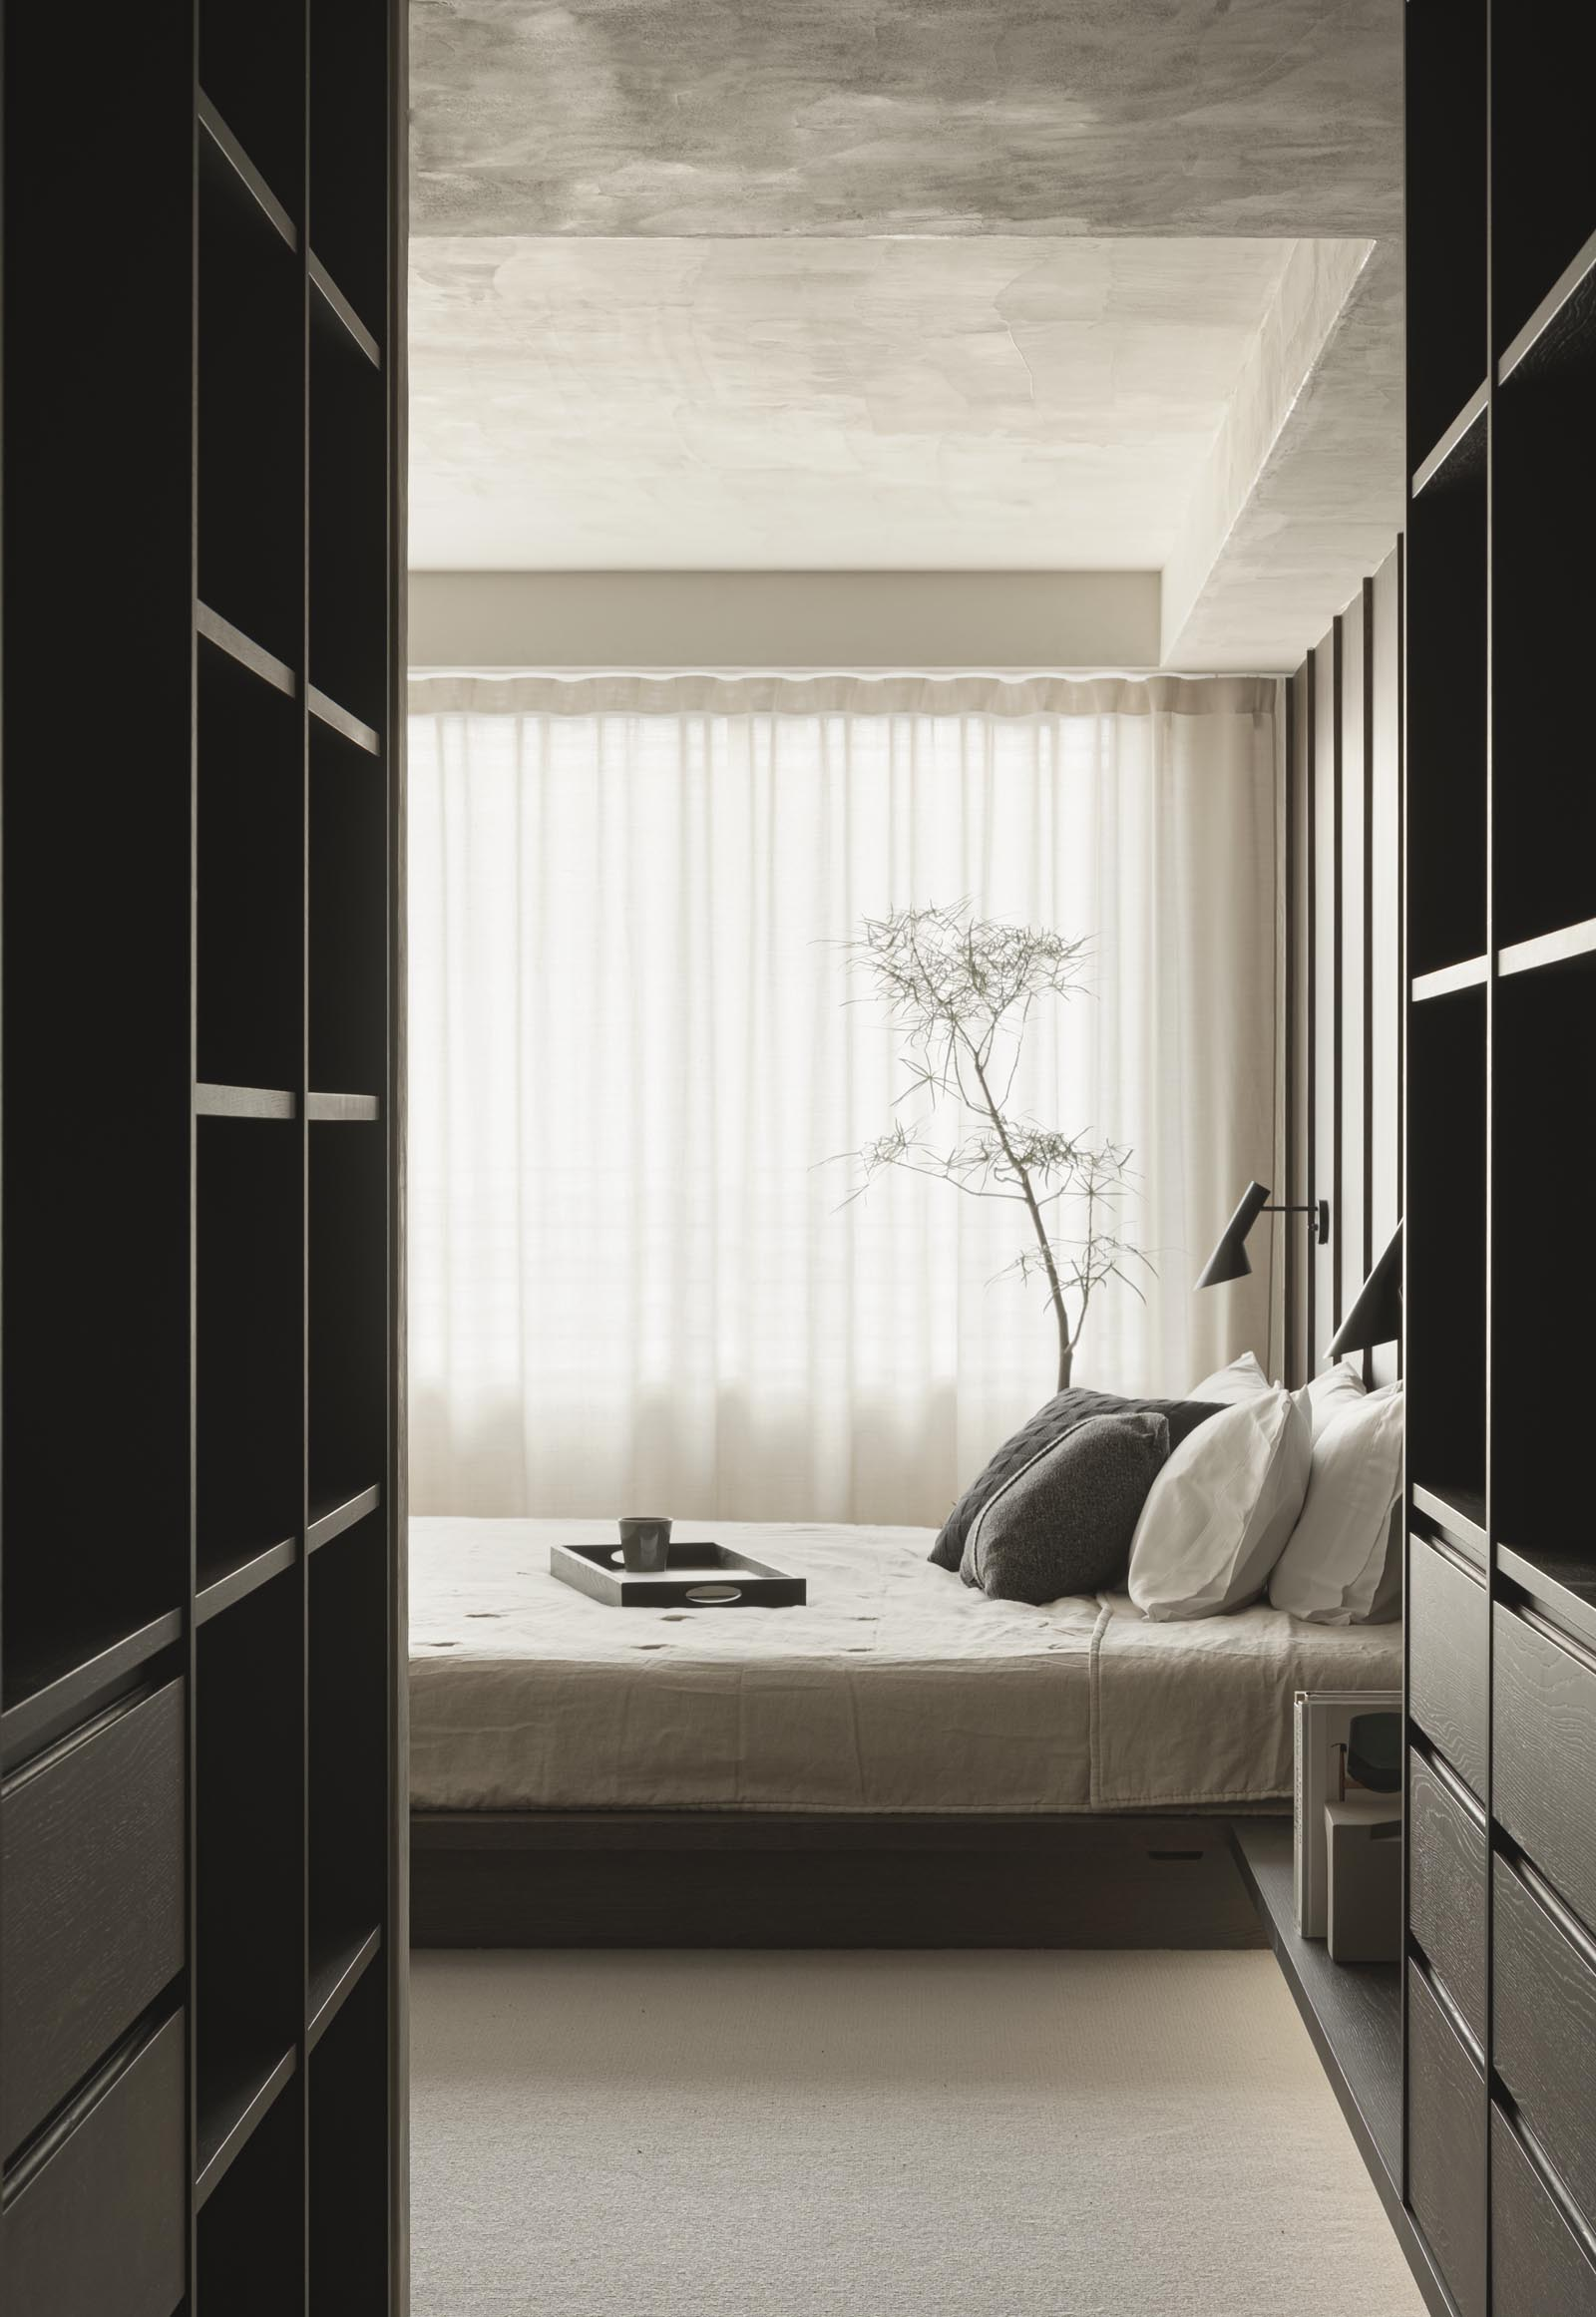 Minimalist Japandi bedroom with dark wooden panelling, bespoke cabinetry and neutral earthy tones | These Four Walls blog